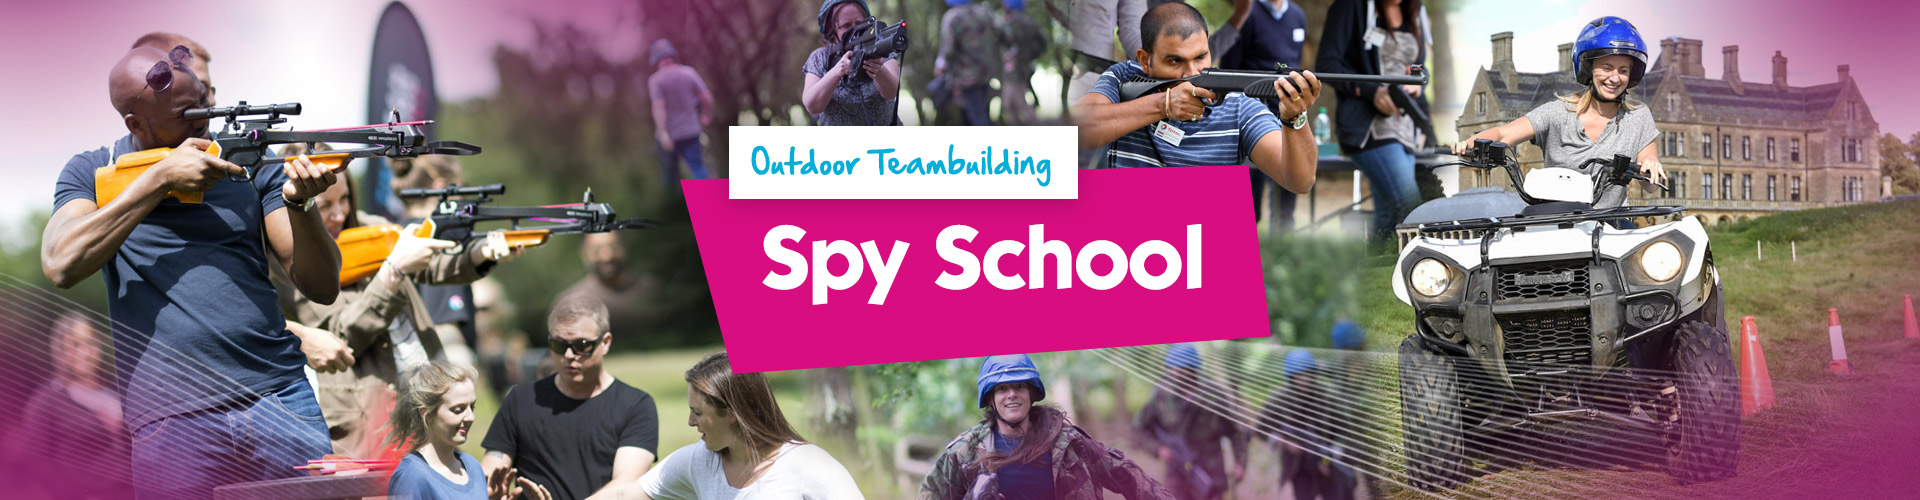 Teambuilding | Spy School